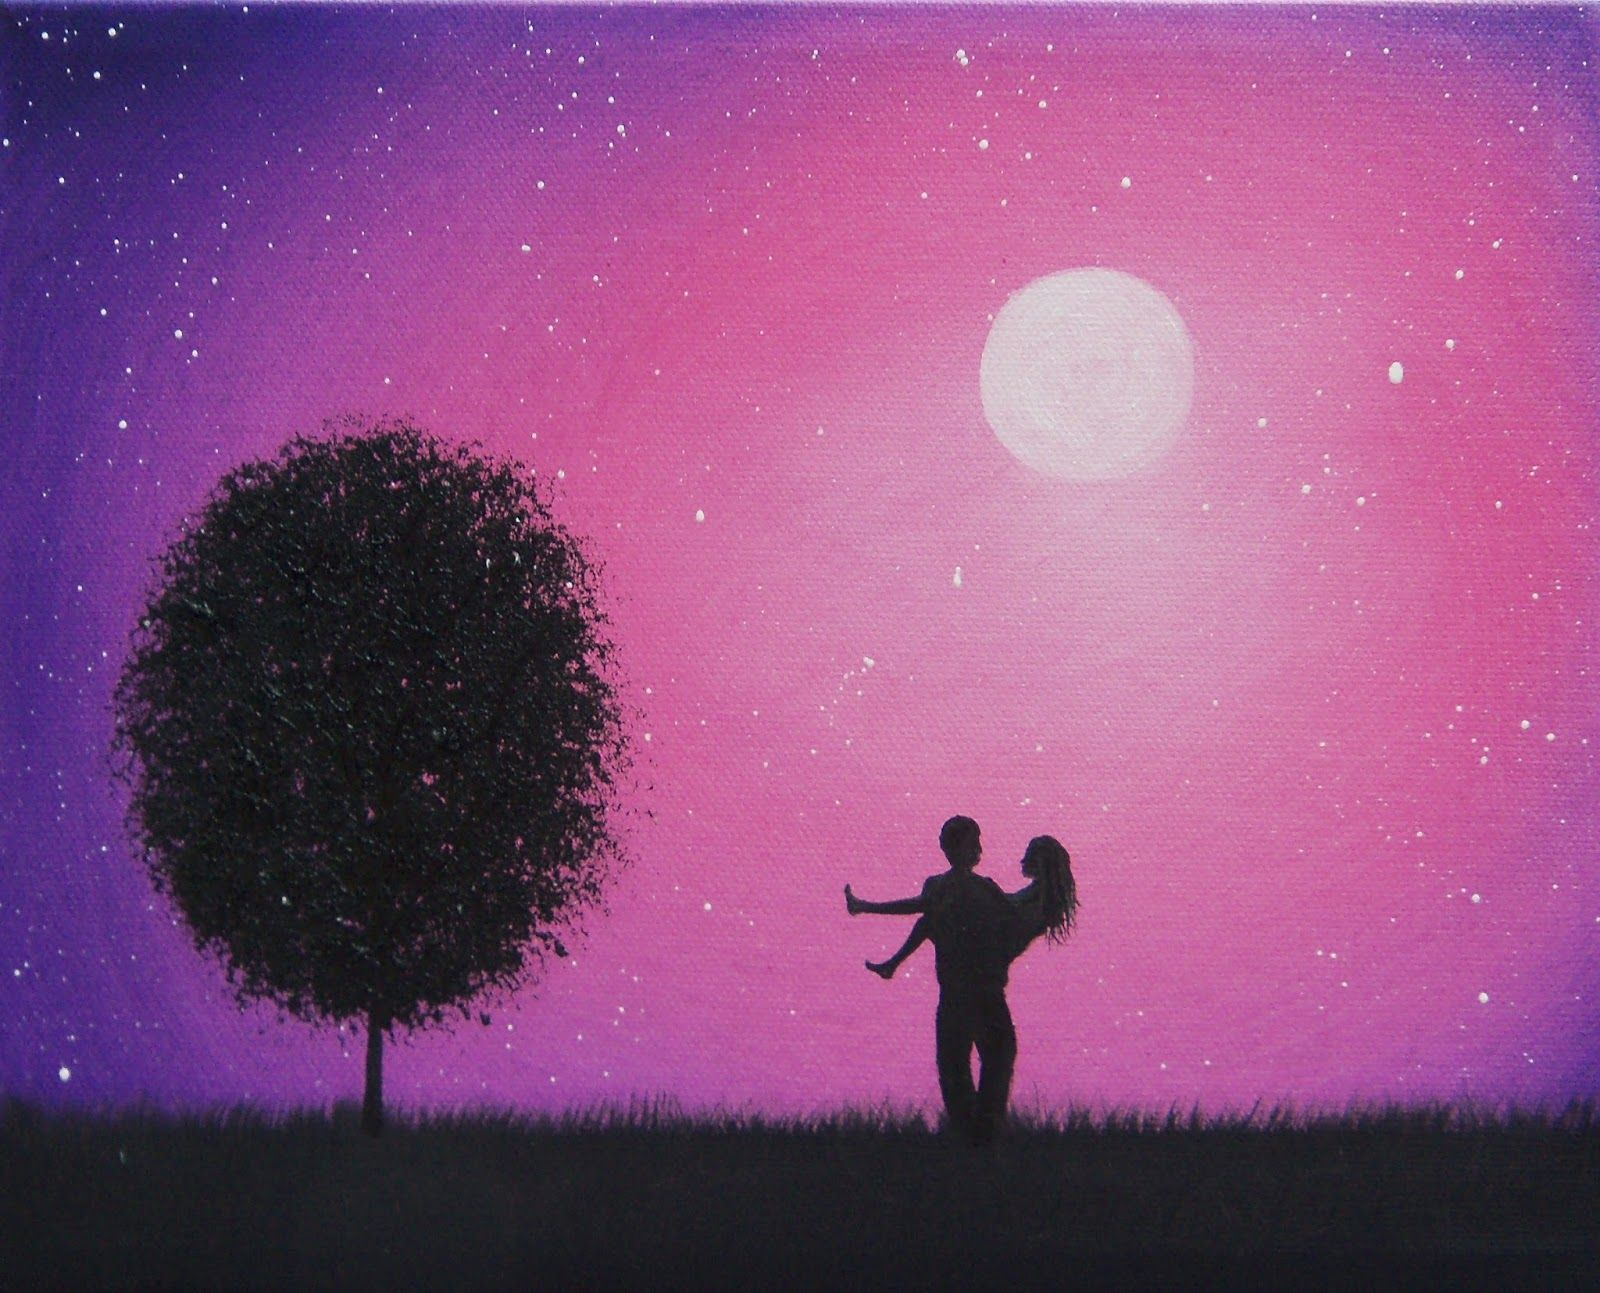 Easy Paintings Silhouette Couple Painting Starry Night Silhouette Art 8 X 10